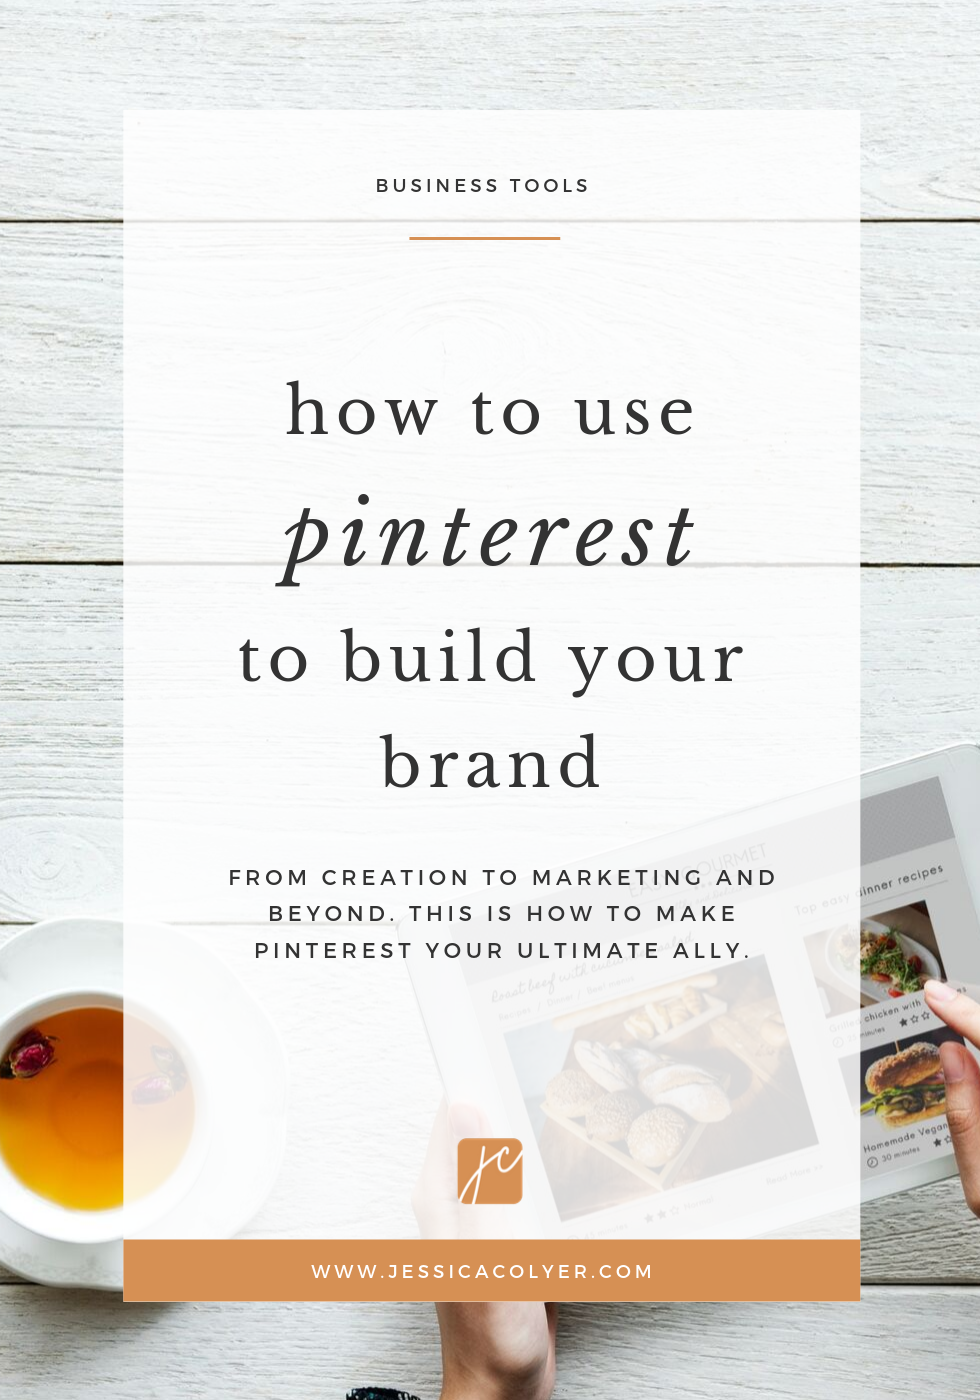 How to Use Pinterest to Build Your Brand